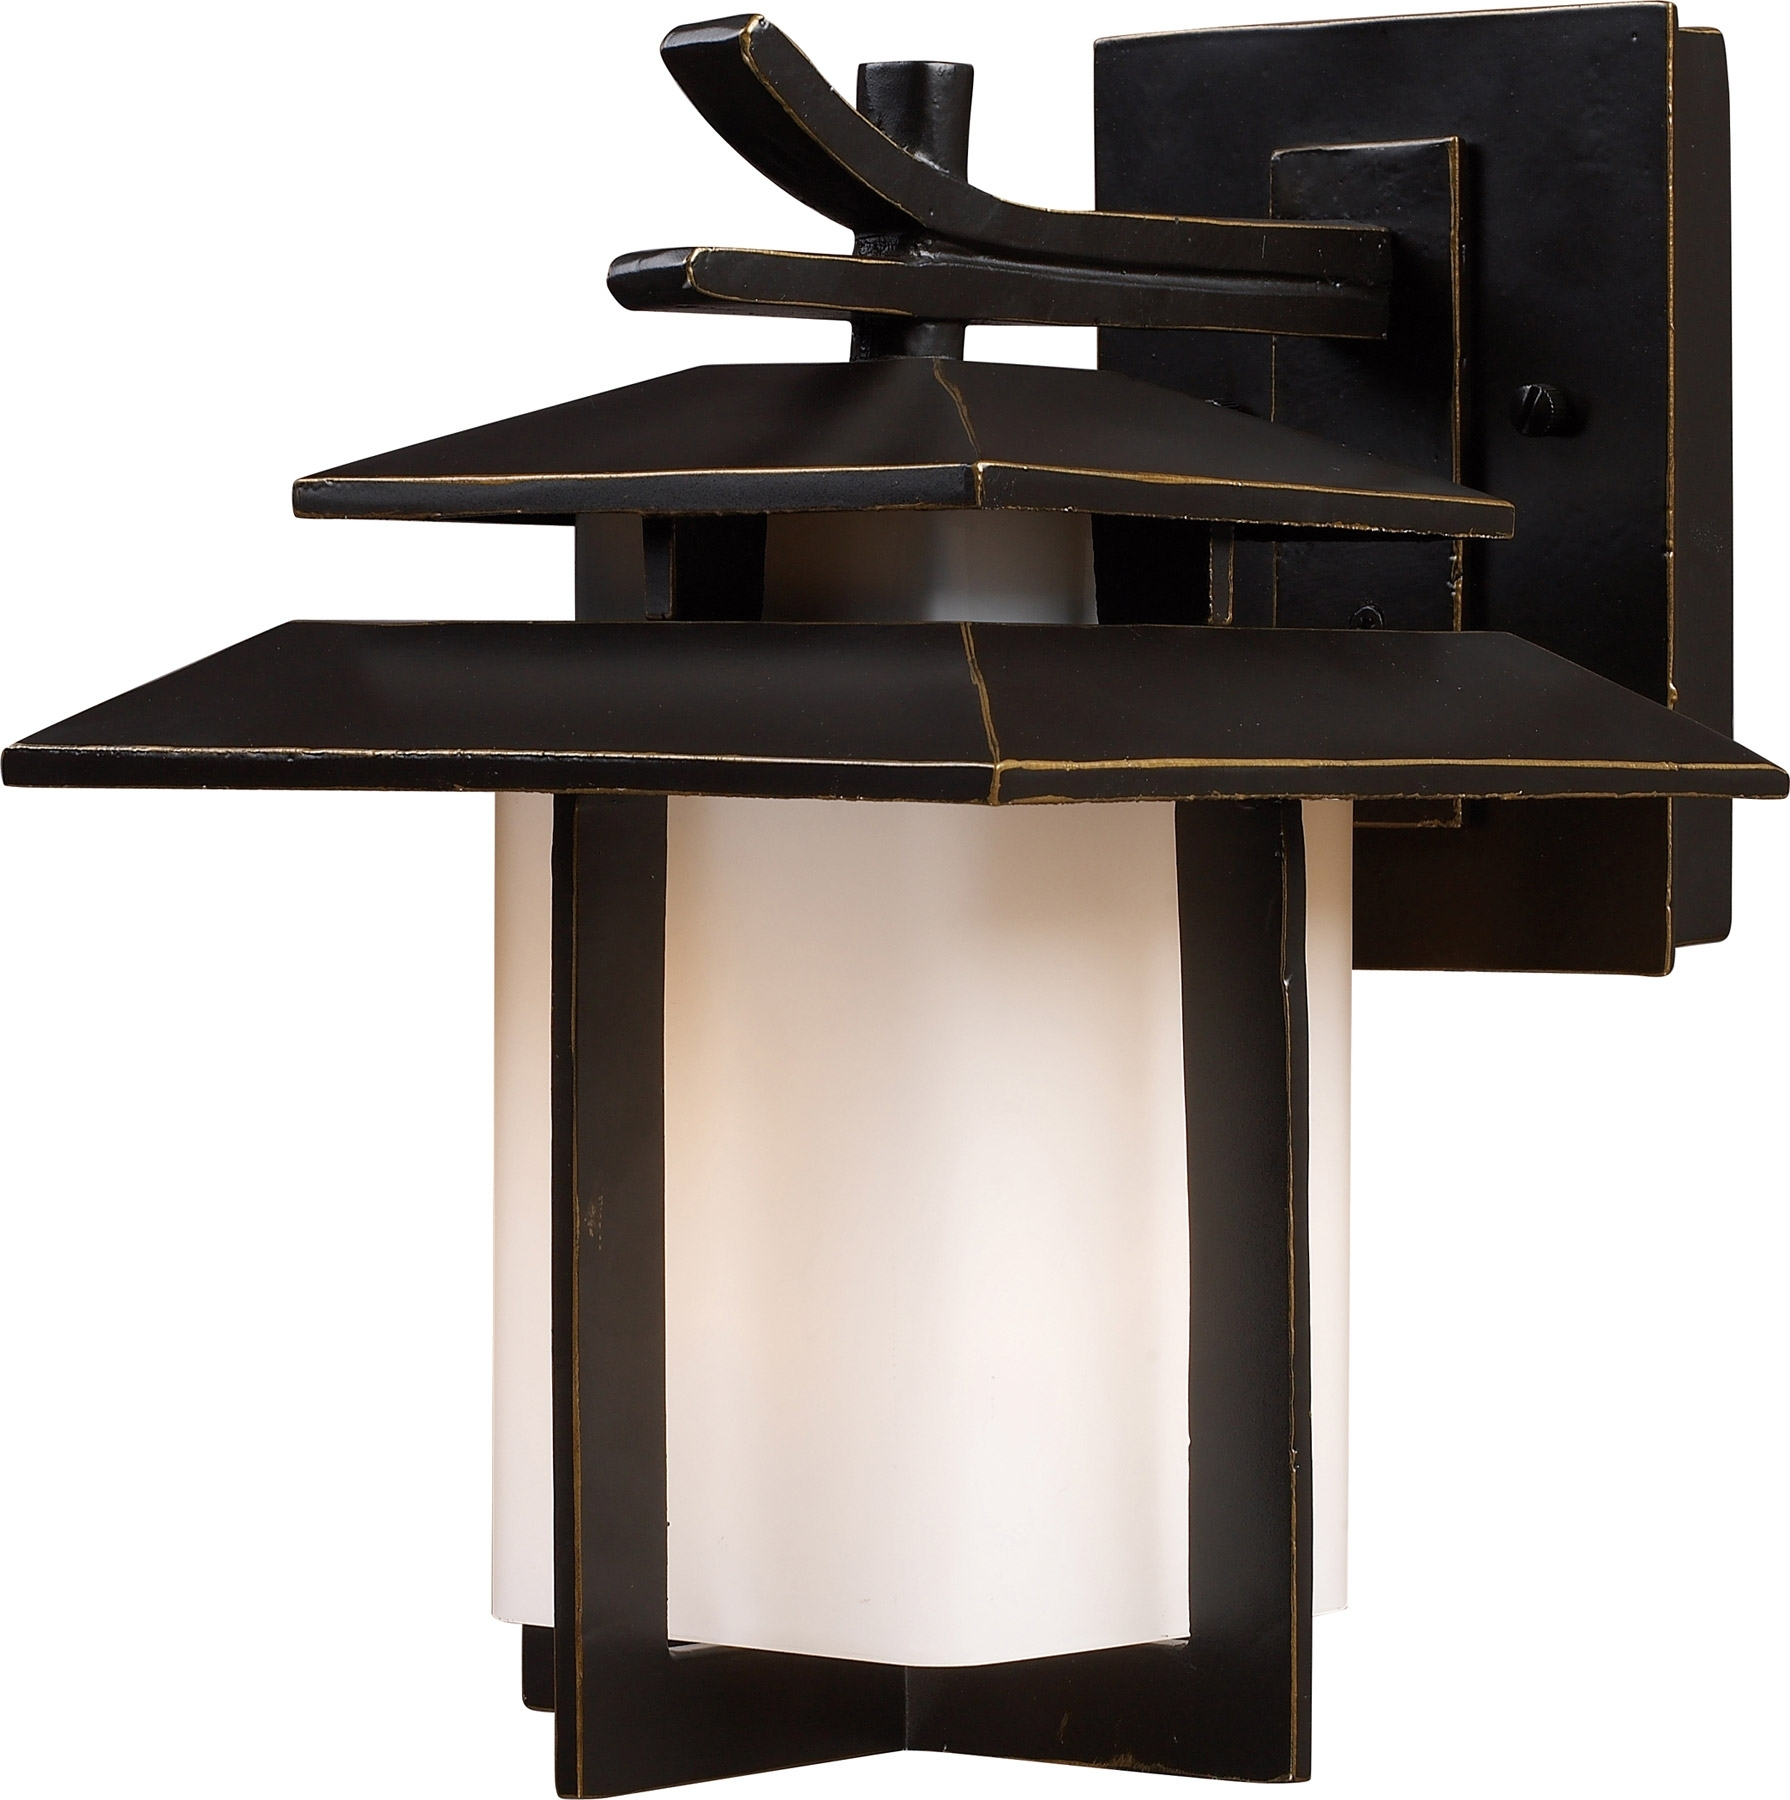 Light : Craftsman Style Outdoor Lighting Home Decorators Collection In Outdoor Ceiling Lights With Photocell (View 8 of 15)